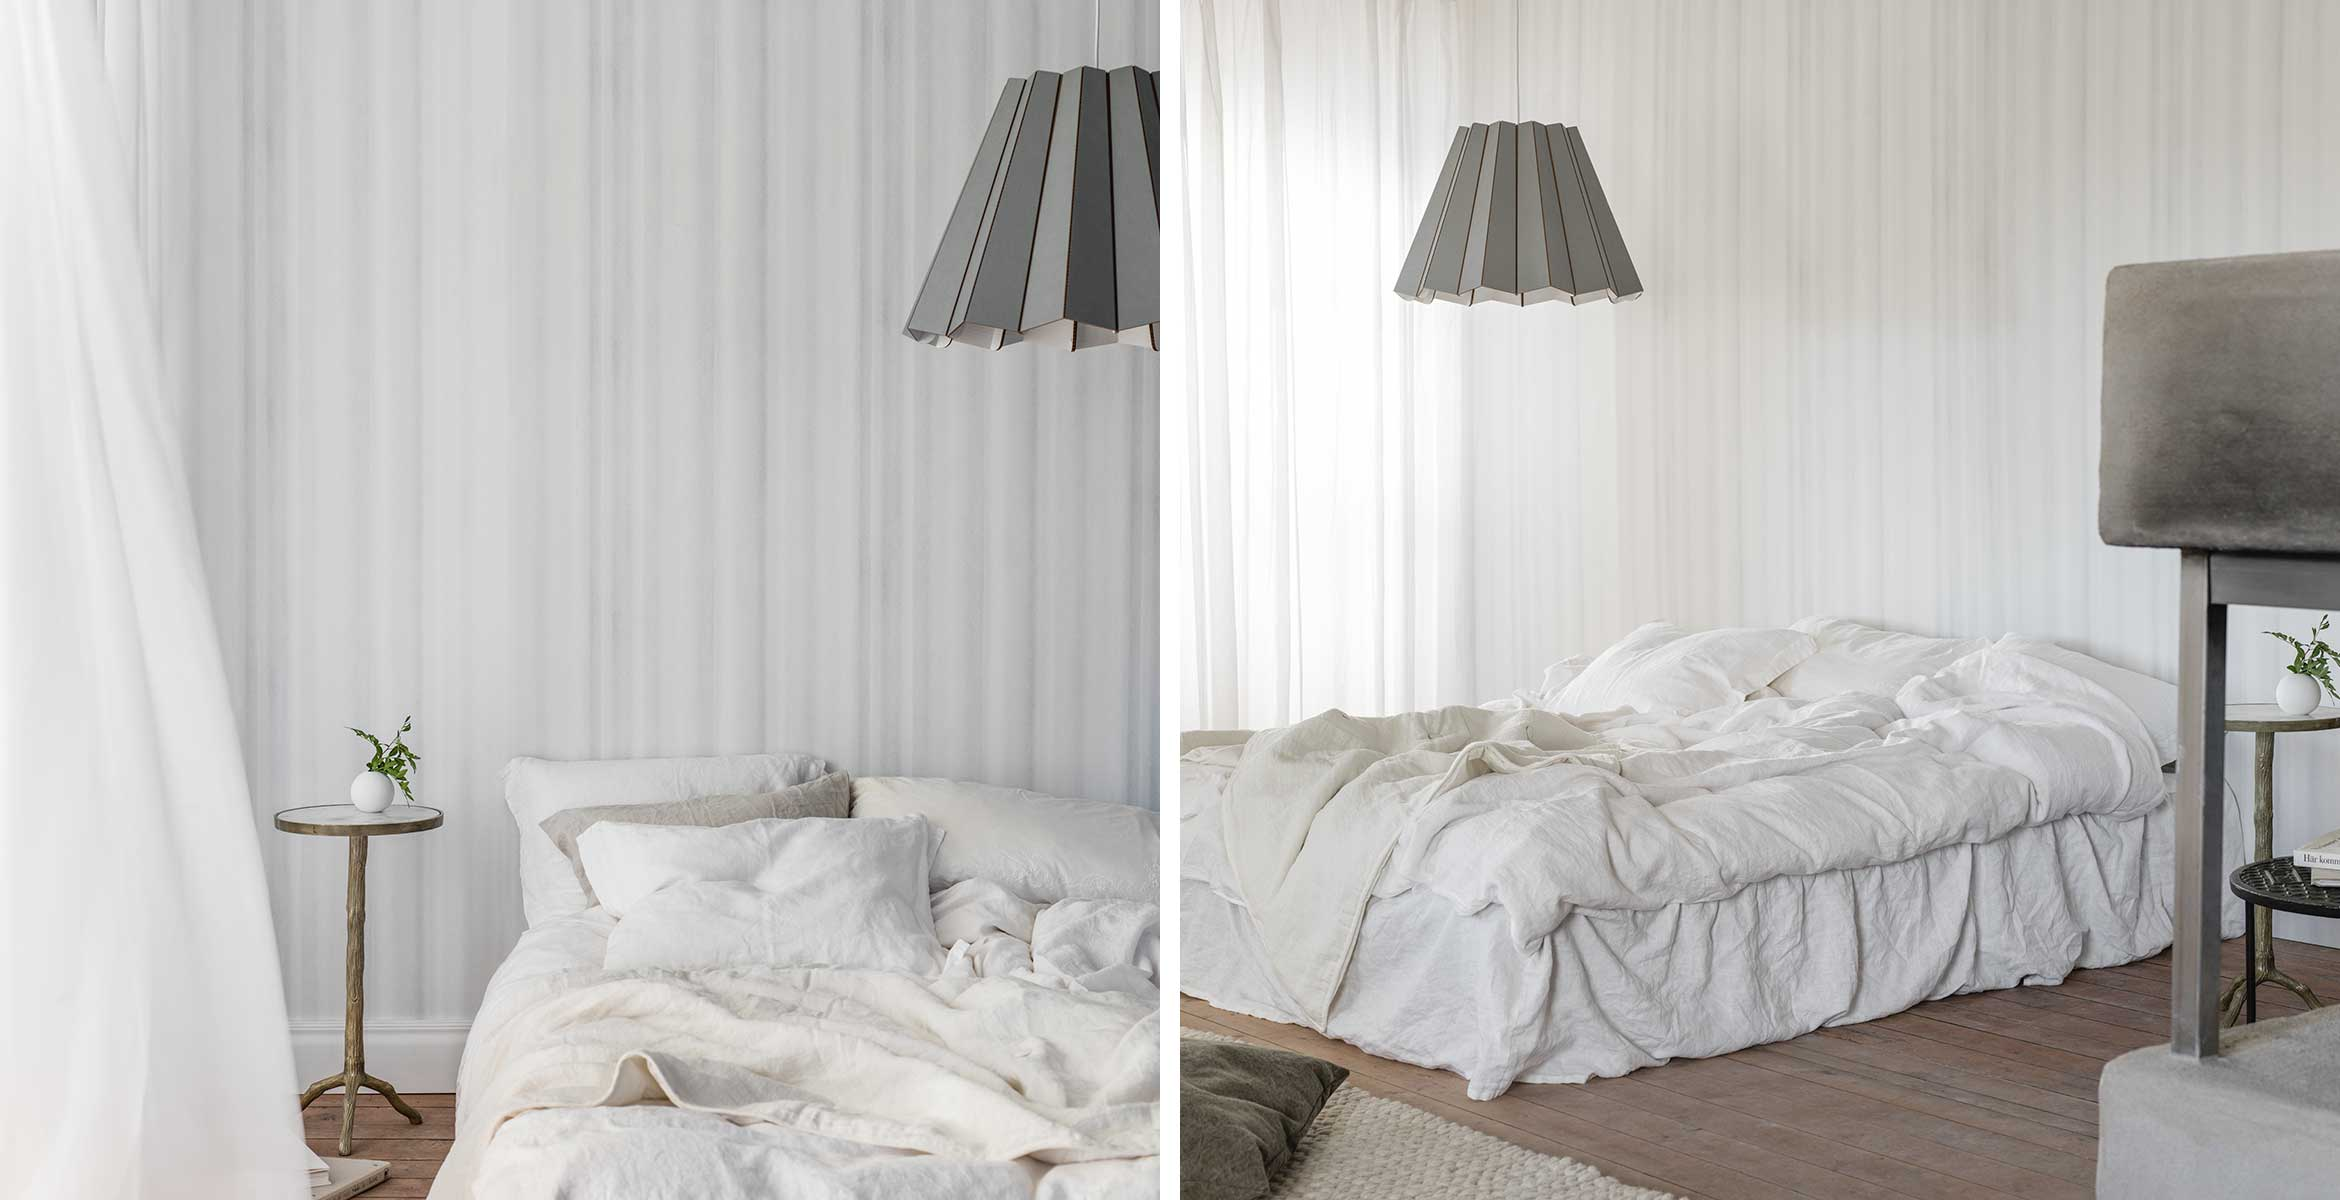 New Drapery is a classic way of decorating walls turned into a design that offers exciting and lively shadow play